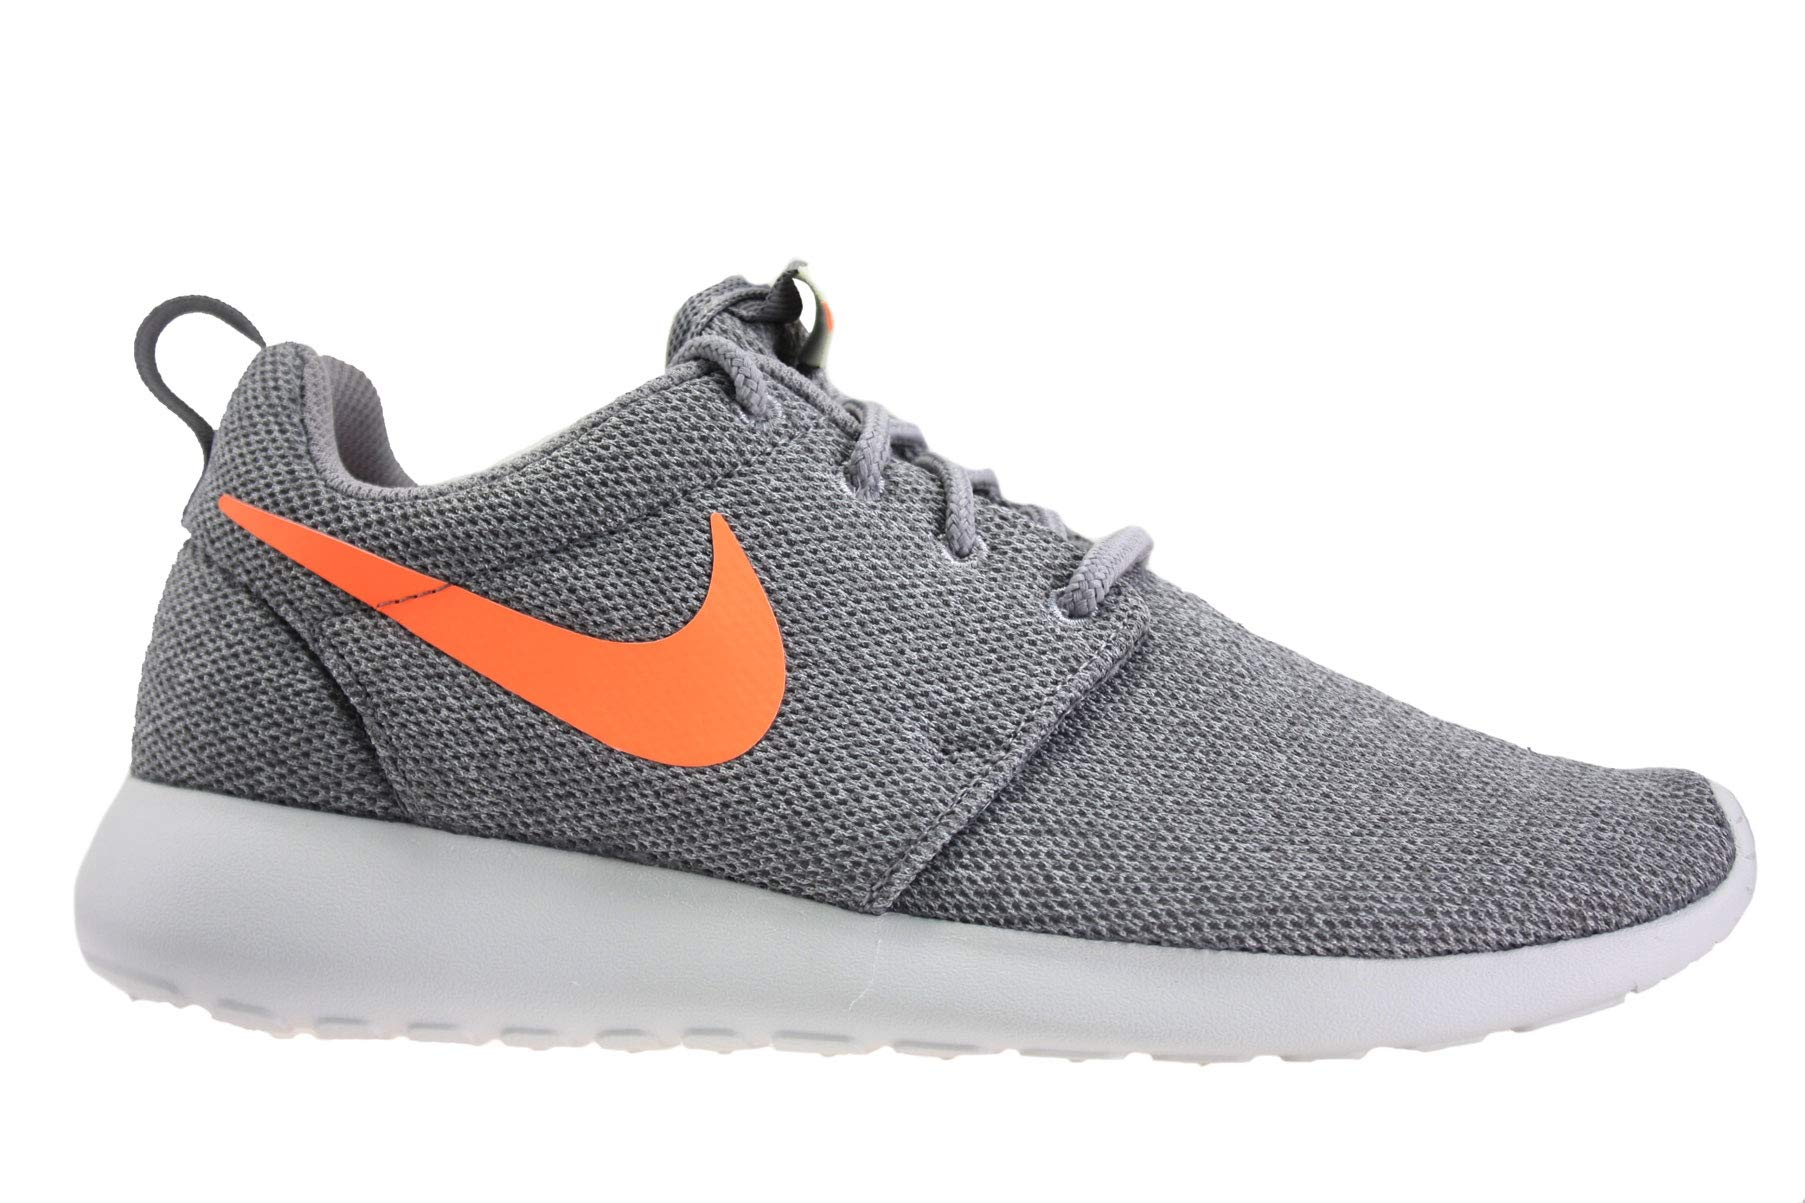 promo code d9788 25bfd Galleon - NIKE Womens Roshe One Running Shoes Atmosphere Grey Orange Plus  844994-010 Size 6